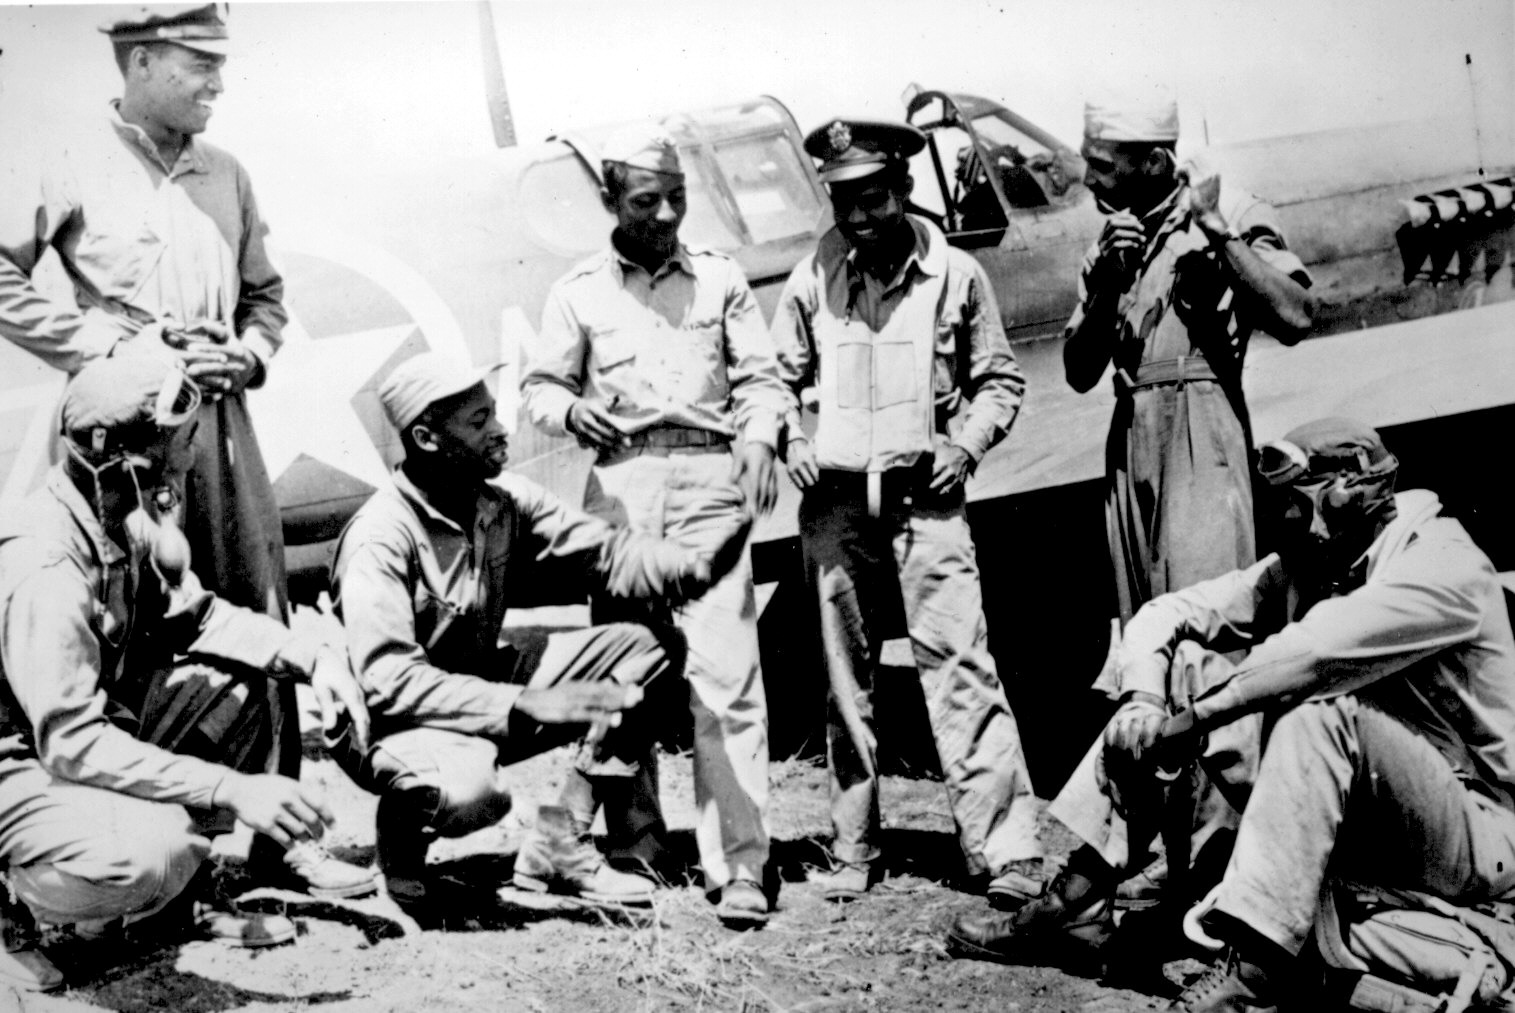 Tuskegee Airmen After Action in Italy